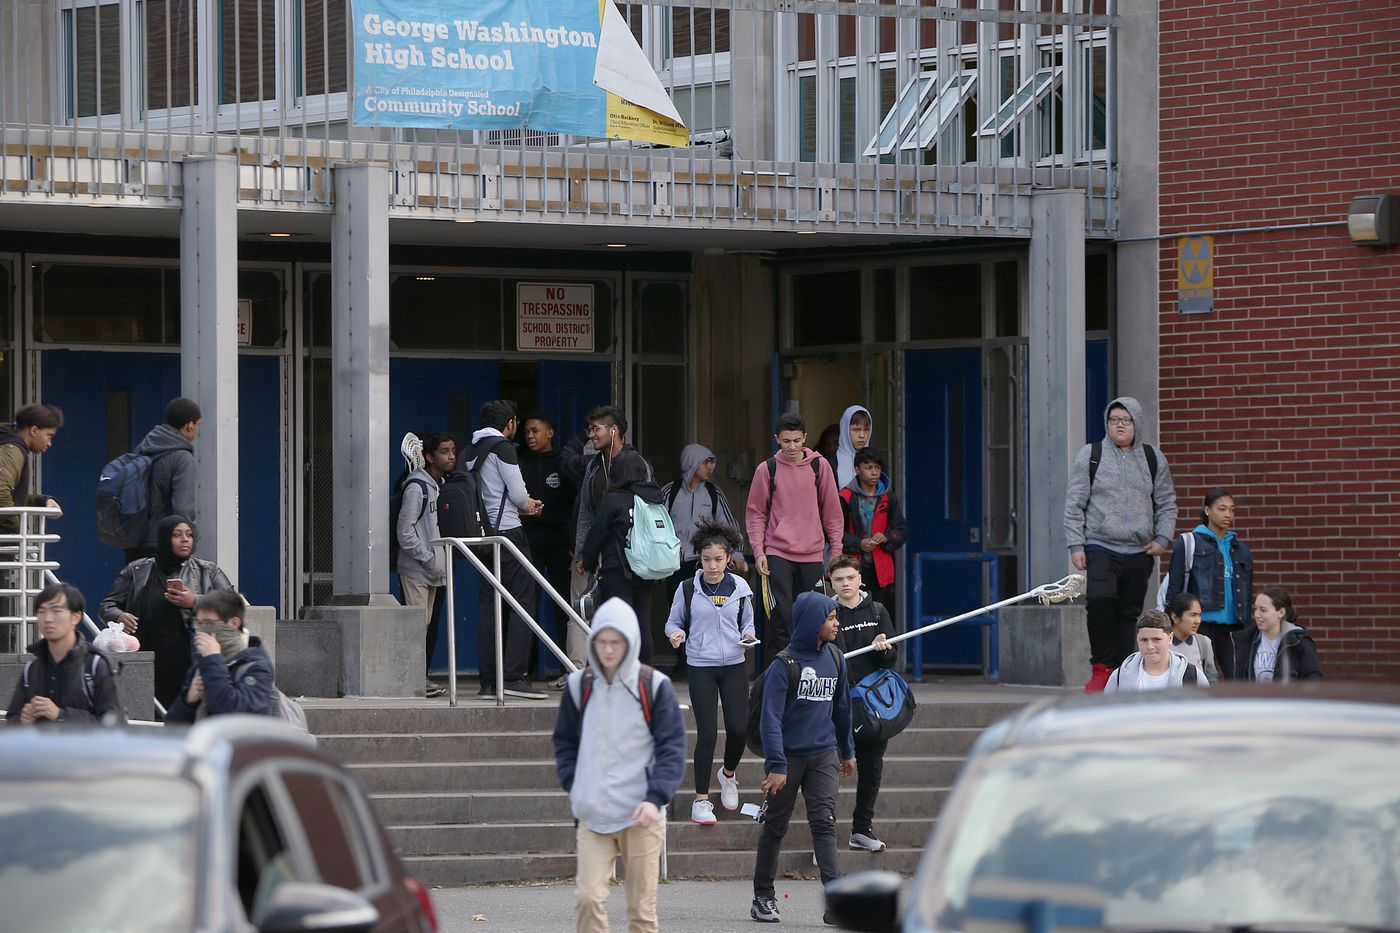 Students leave George Washington High School in Northeast Philadelphia after dismissal on Friday, March 13, 2020. Philadelphia public schools will be closed for two weeks due to staffing shortages resulting from the coronavirus, Superintendent William Hite announced Friday.